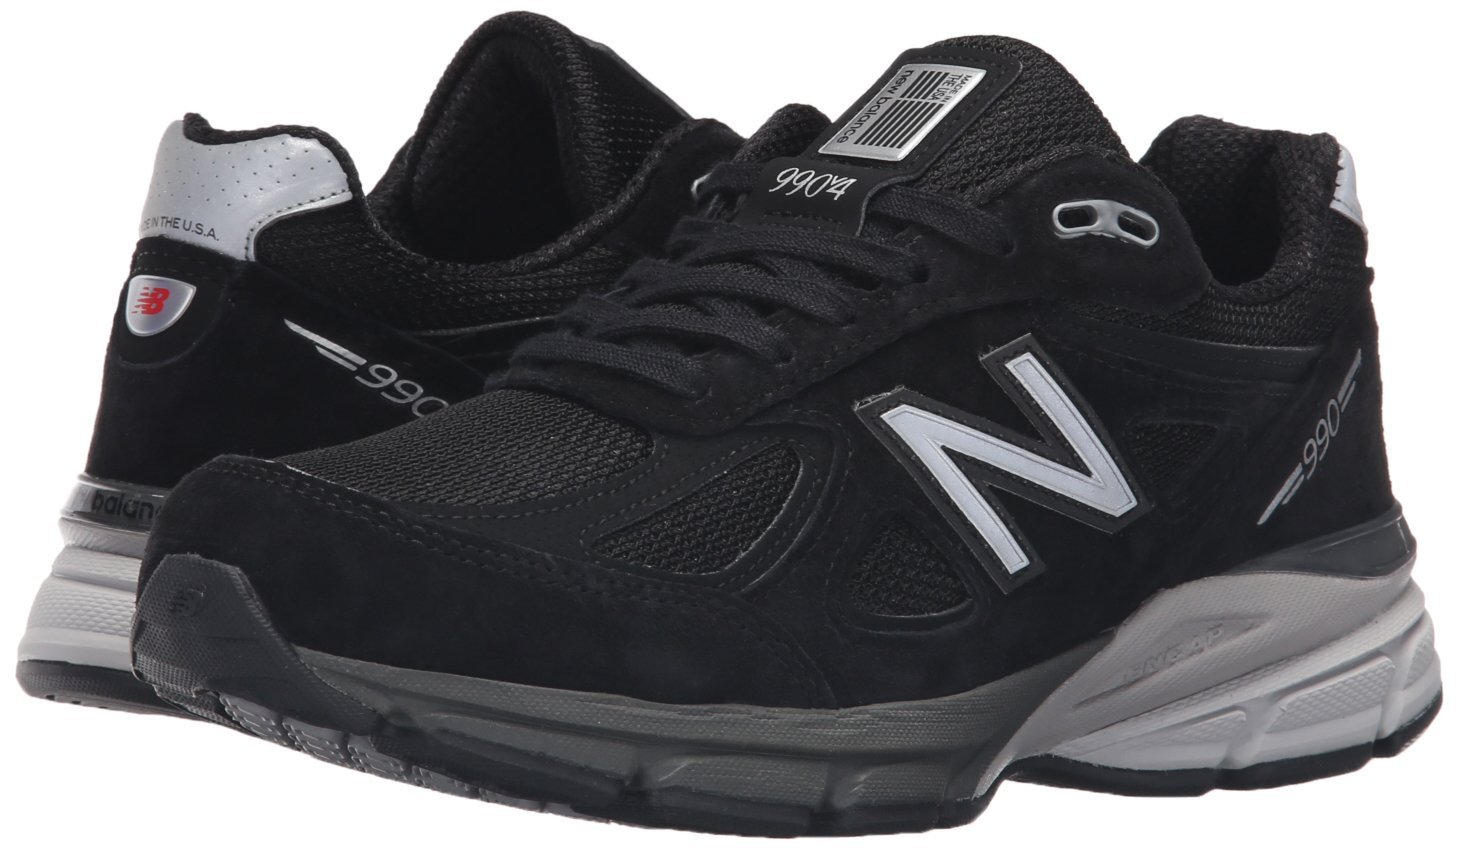 New Balance Women's w990v4 Running US|Black/Silver Shoe B015XY91FC 7.5 2A US|Black/Silver Running b6c43f